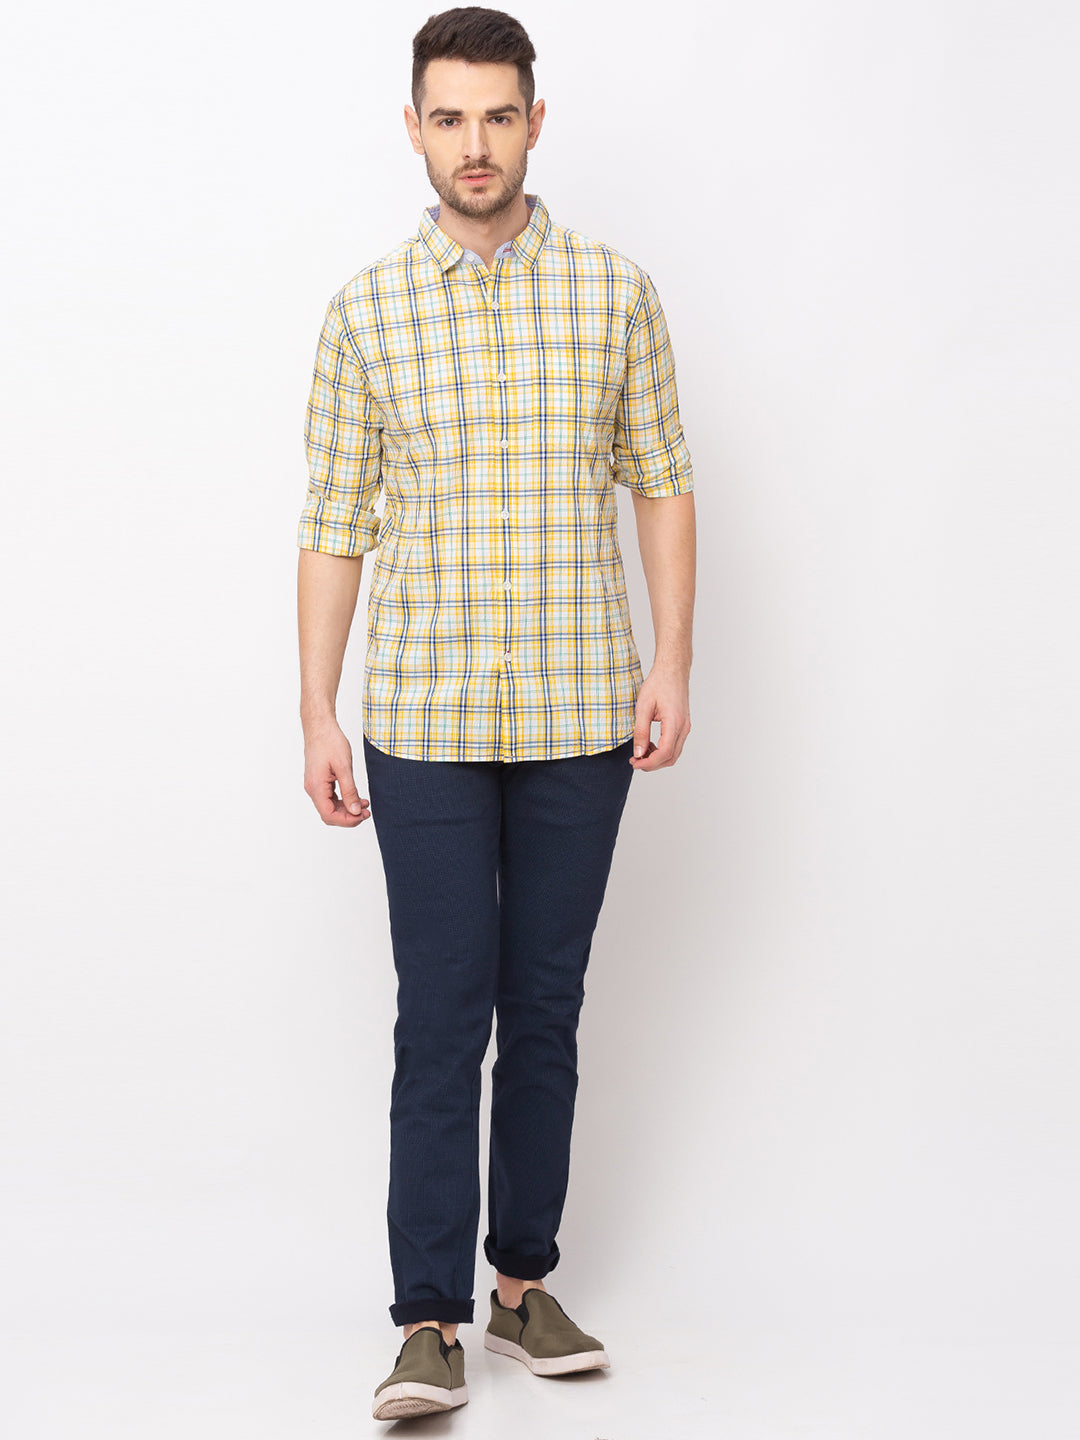 Globus Yellow Checked Shirt-5